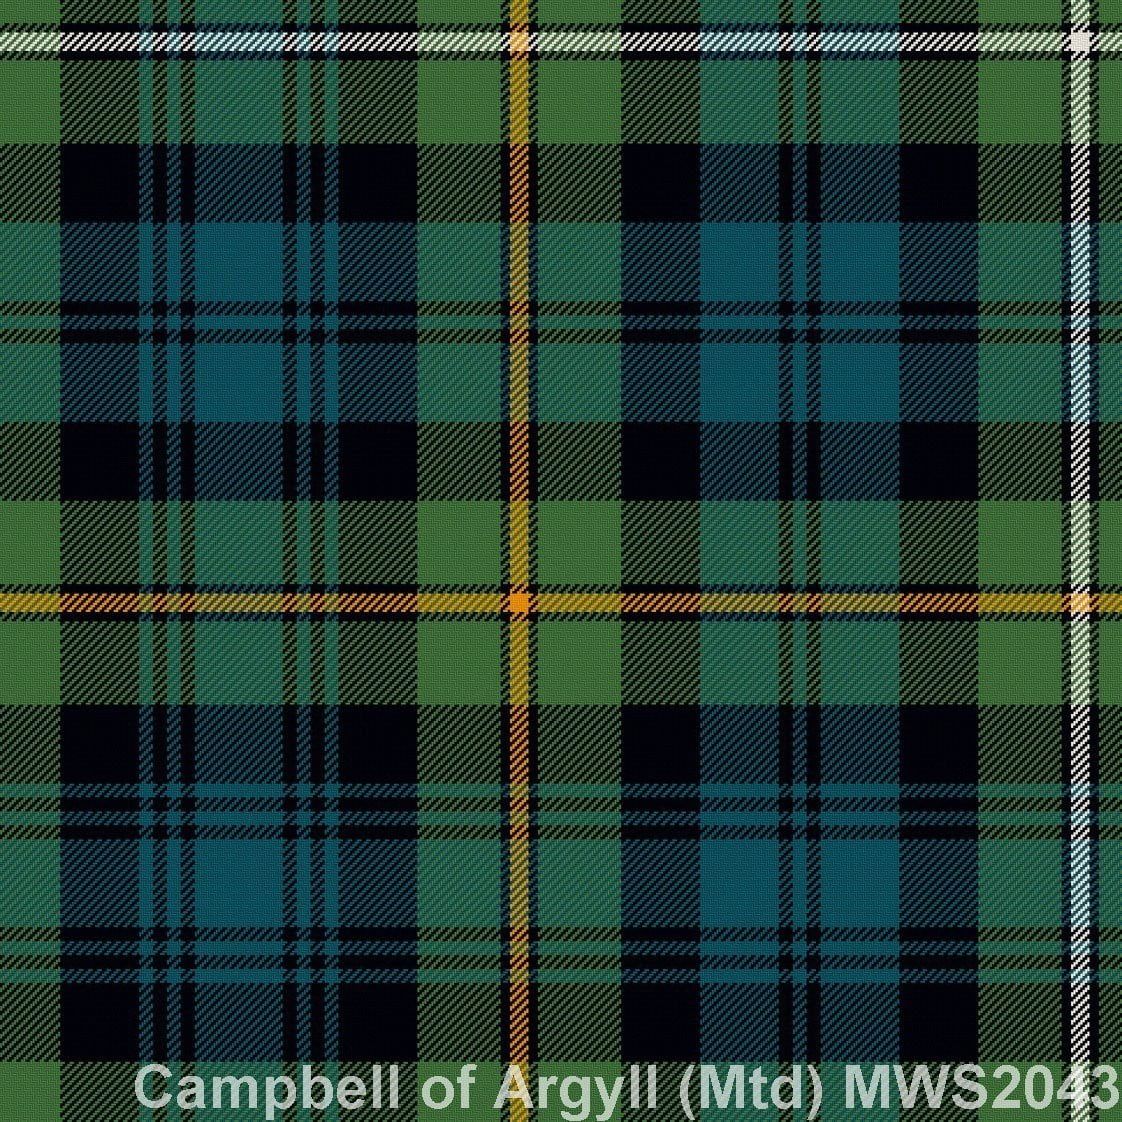 Campbell of Argyll Muted